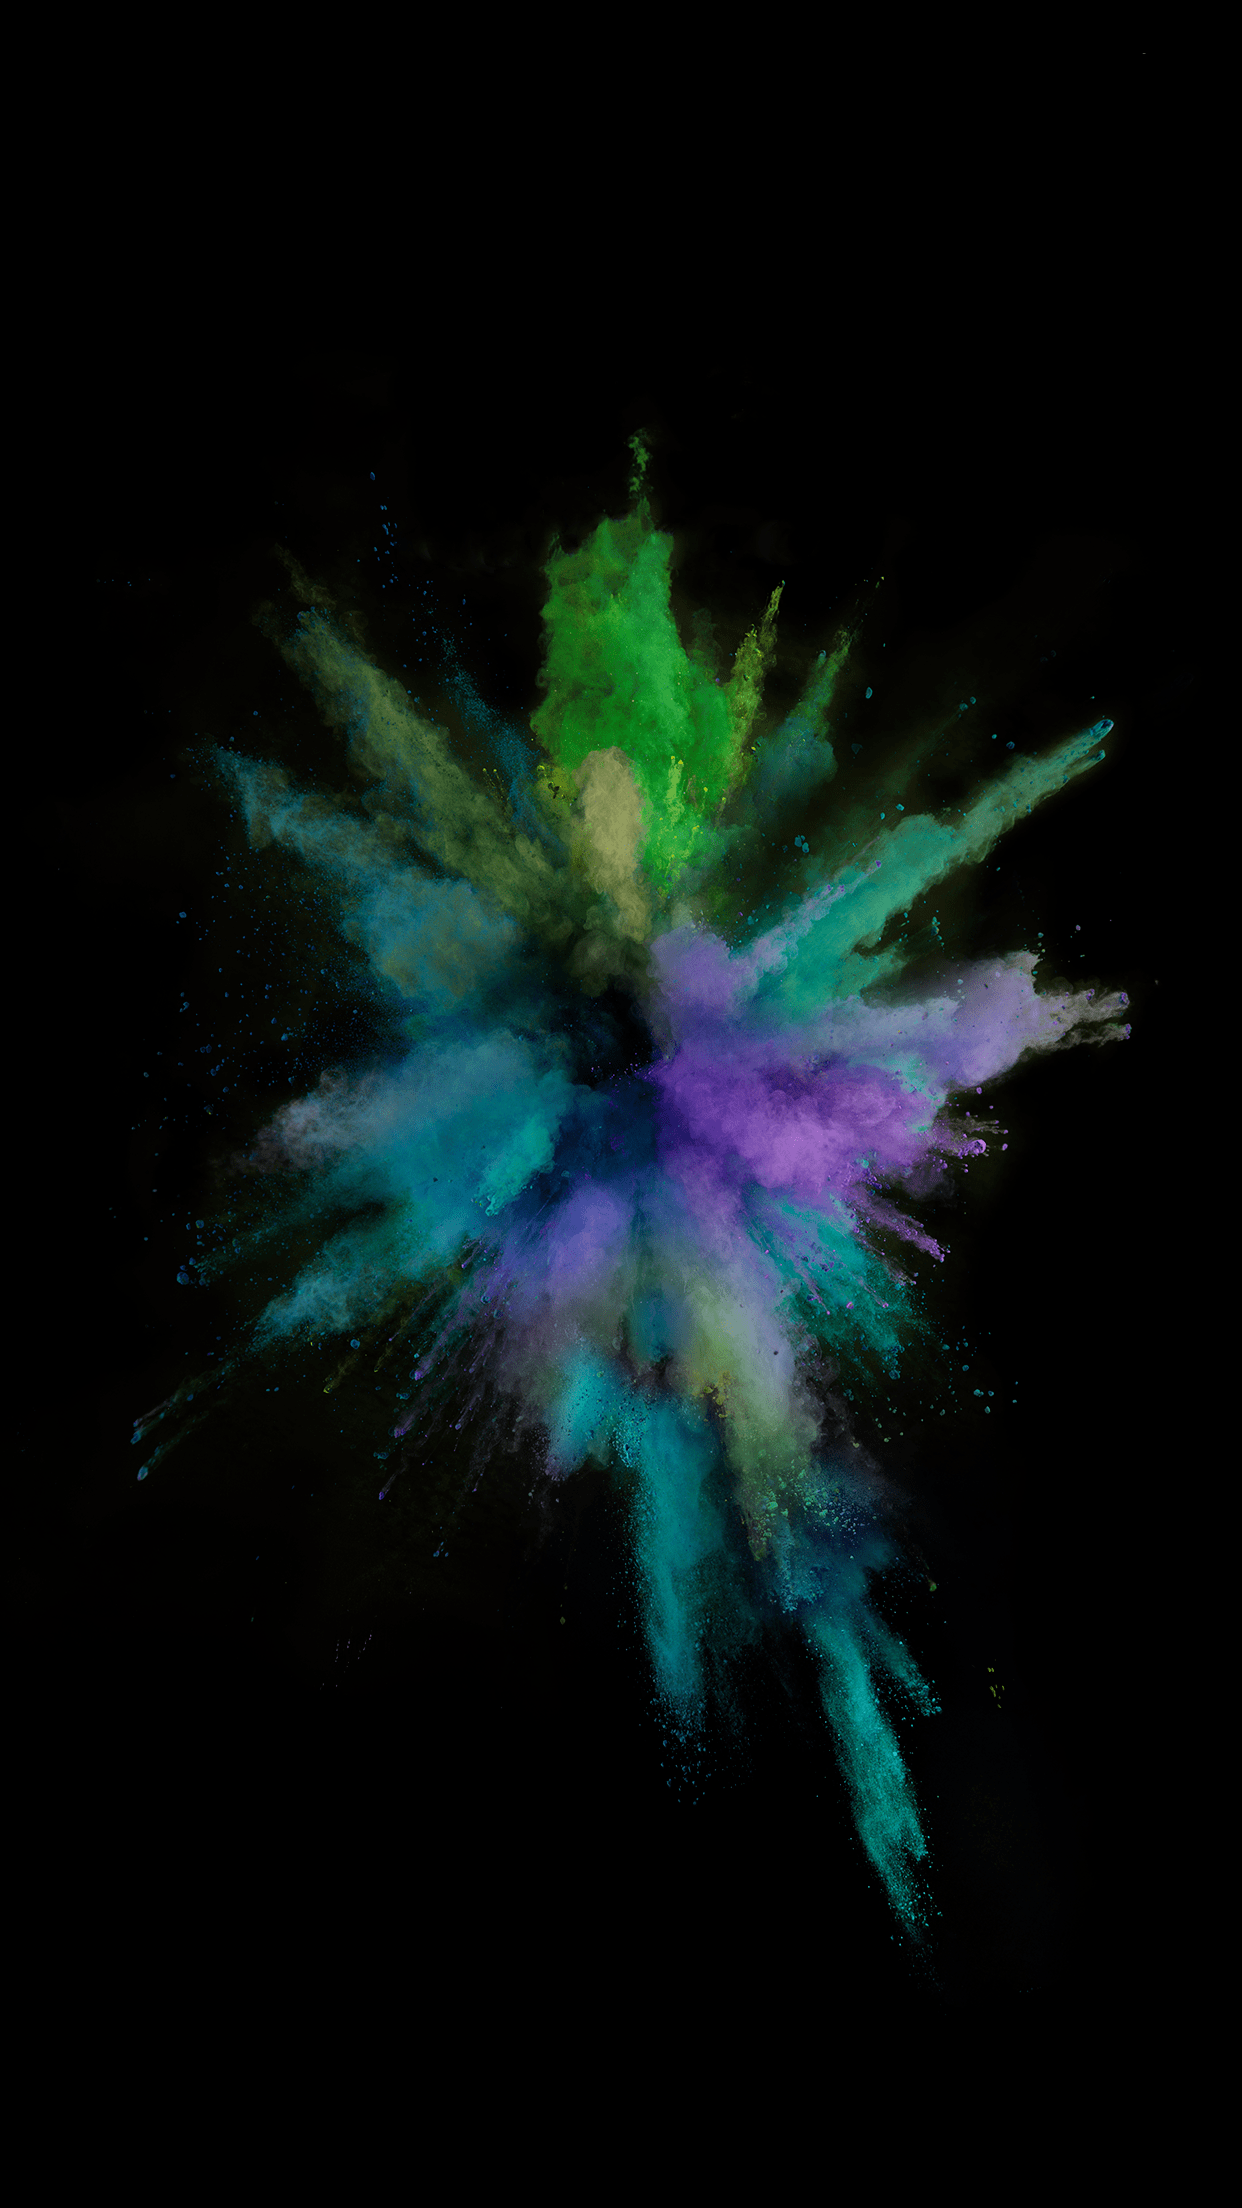 ... IOS 9 Paint Explosion Number 3 Wallpaper